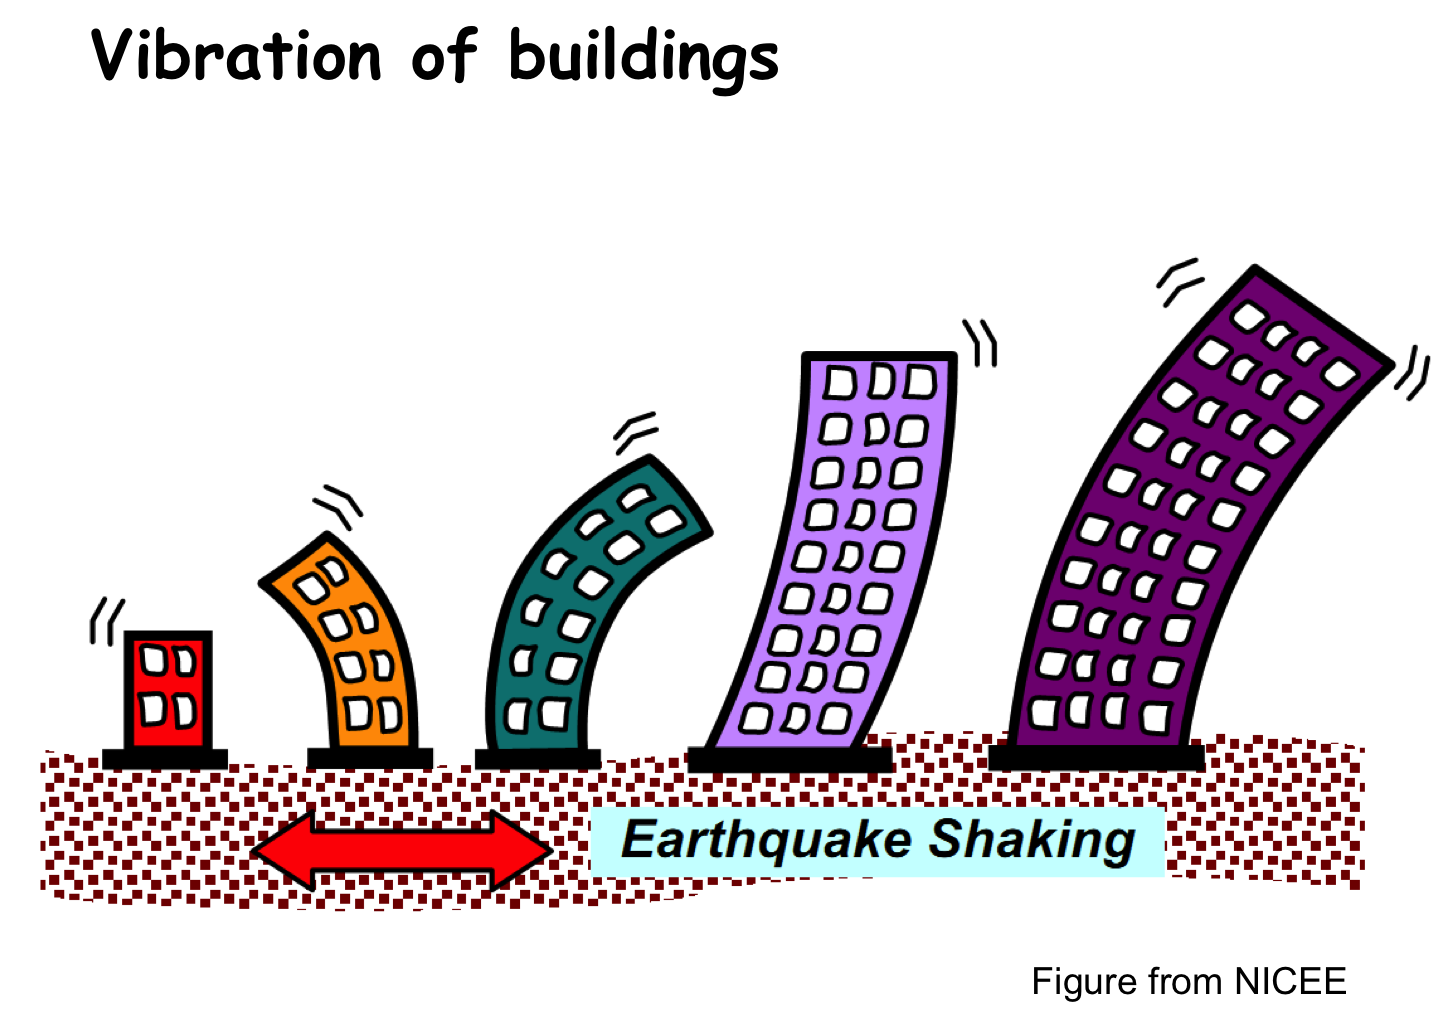 Earthquake clipart earthquake house. Qingkai s blog paper